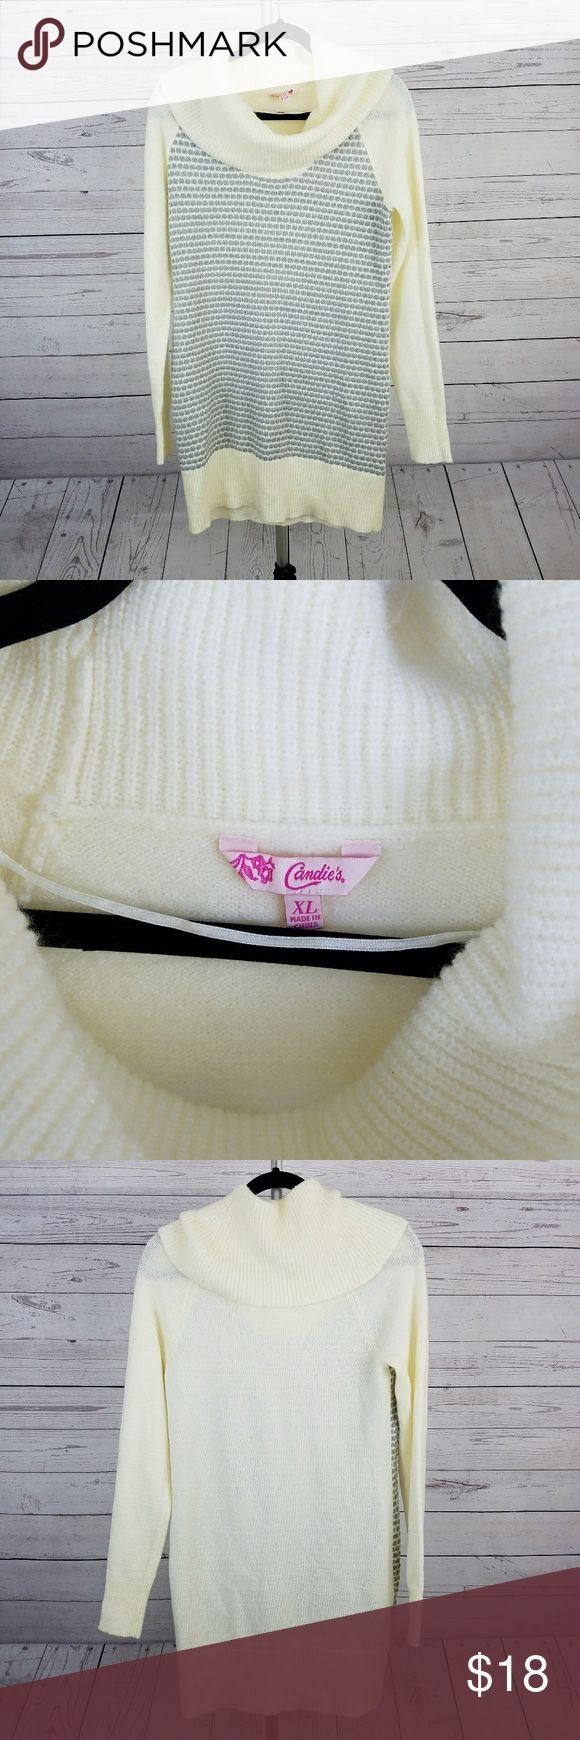 Women's Candie's Cowl Neck Sweater Size XL This is a beautiful and excellent used condition women's cowl neck sweater in size XL by Candie's. Candie's Sweaters Cowl & Turtlenecks